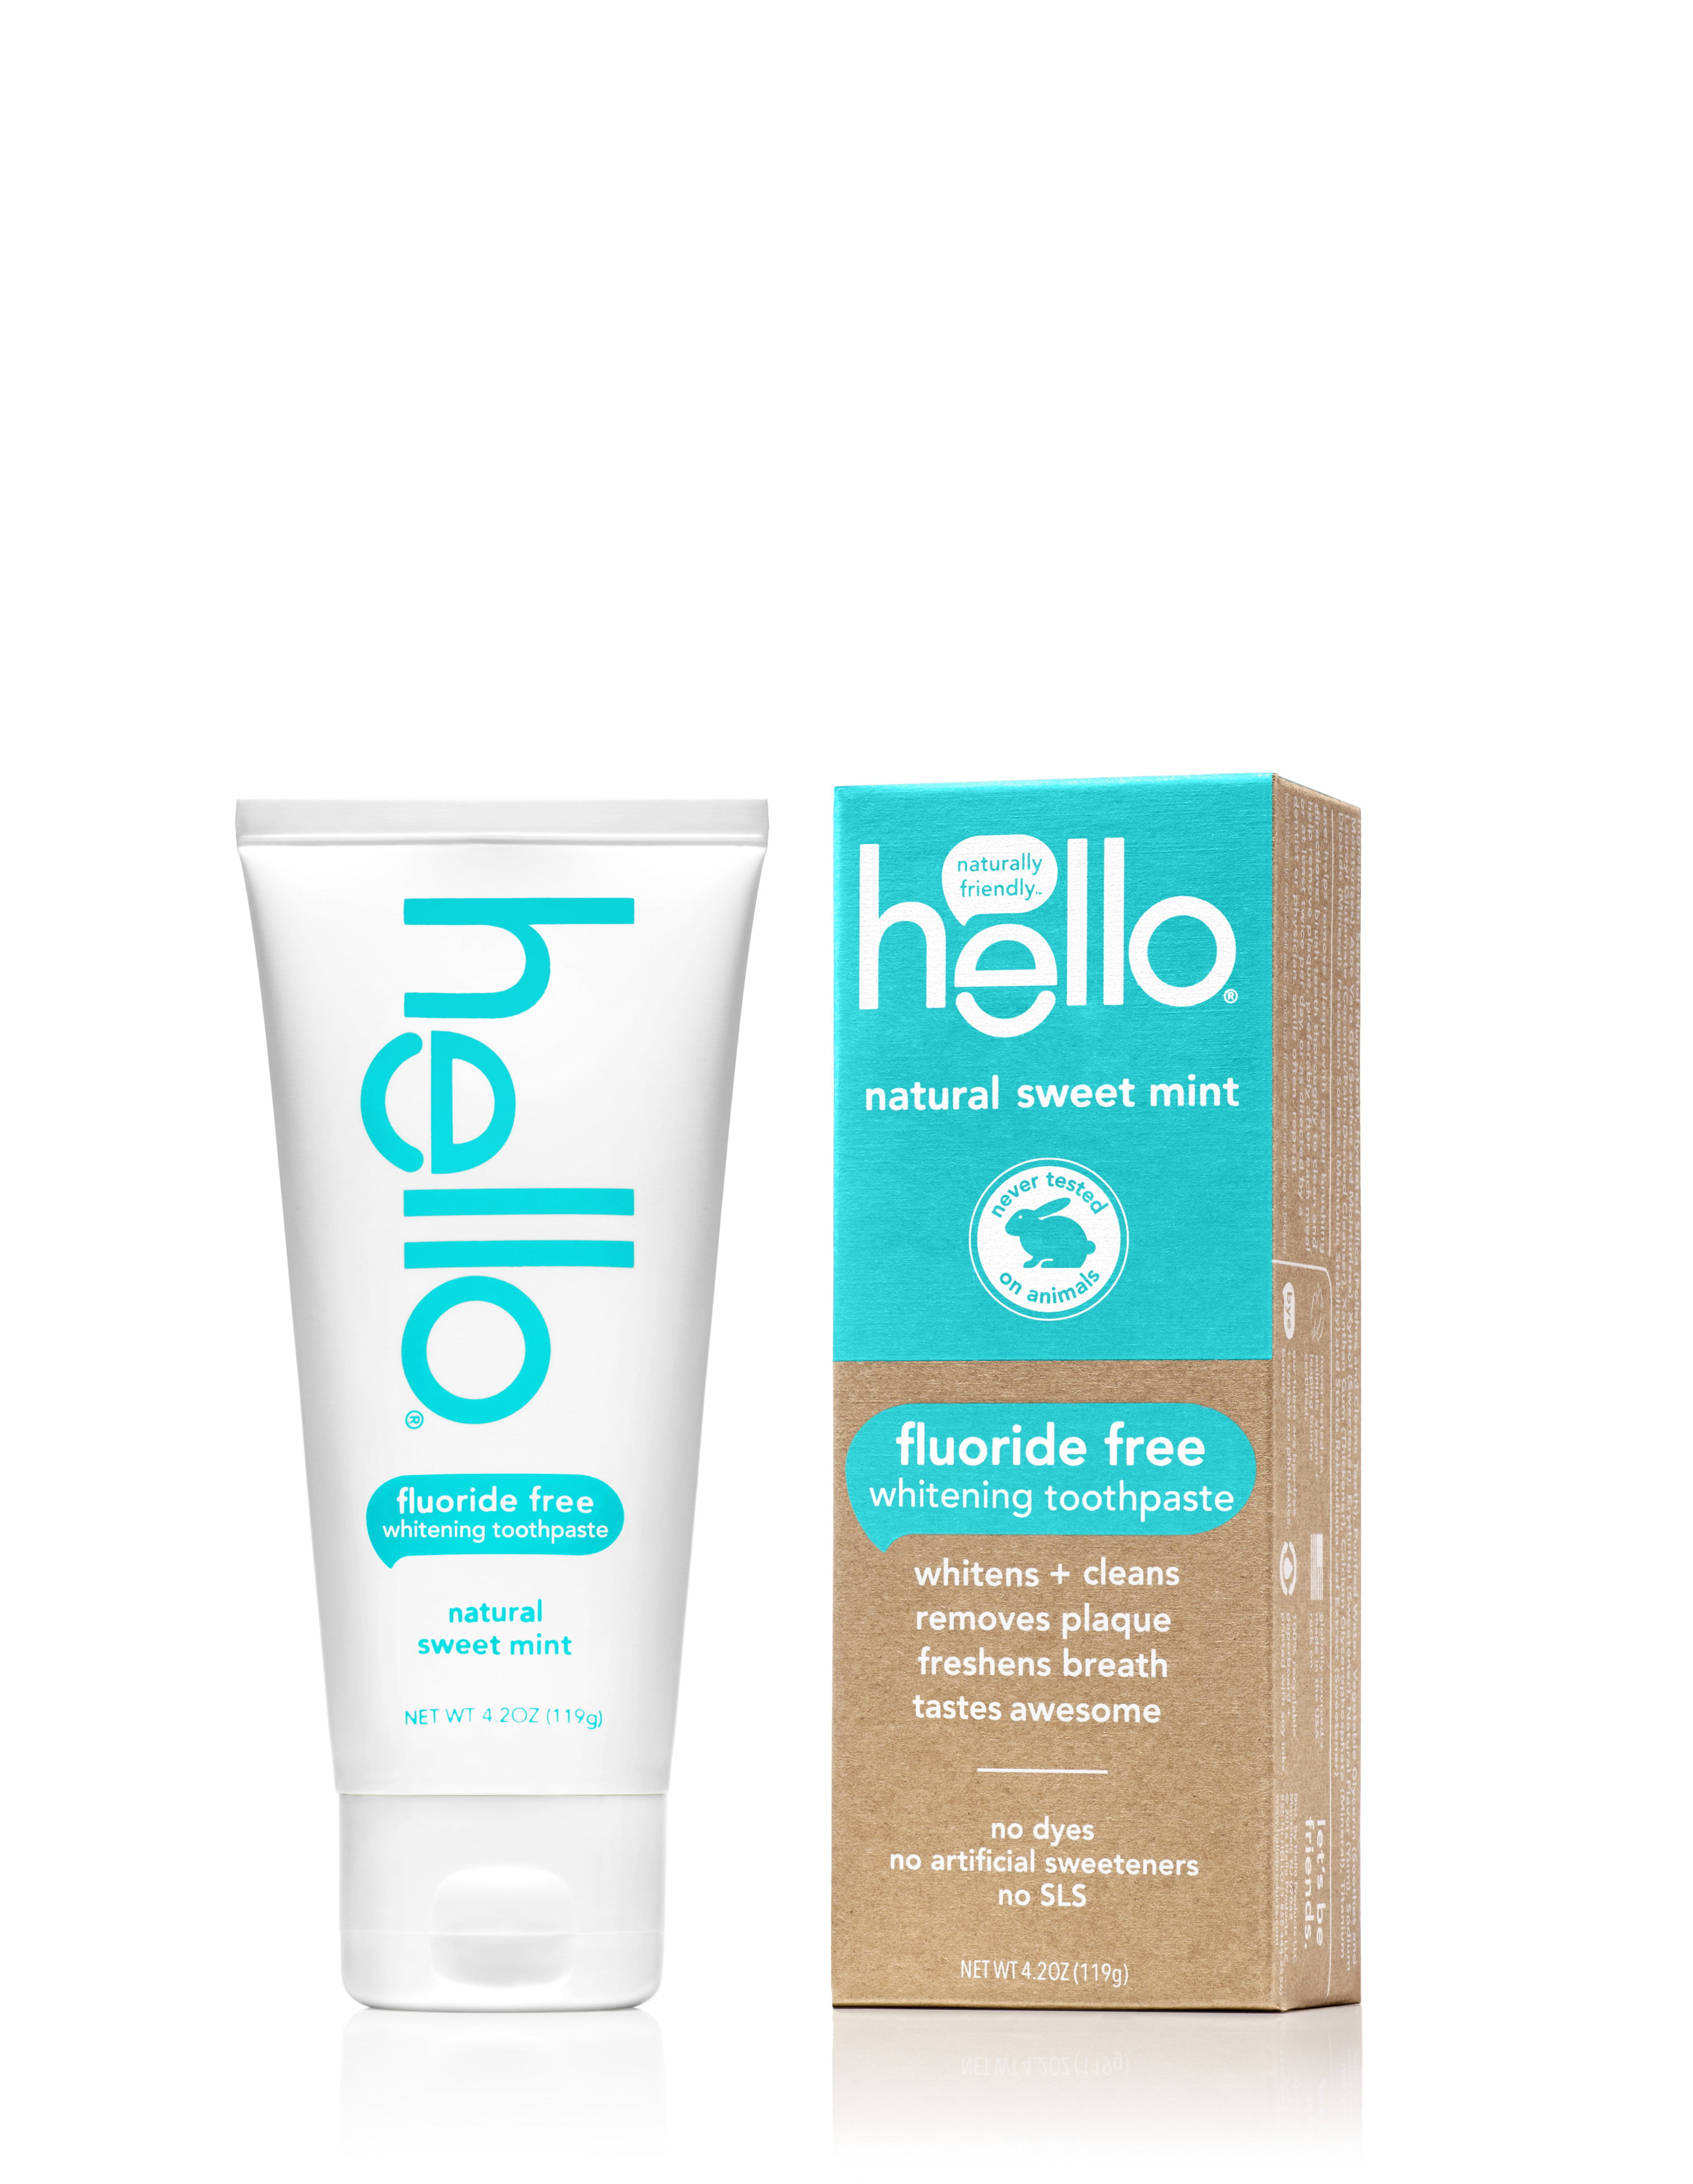 Hello Natural Sweet Mint Fluoride Free Toothpaste 42 oz Walmartcom